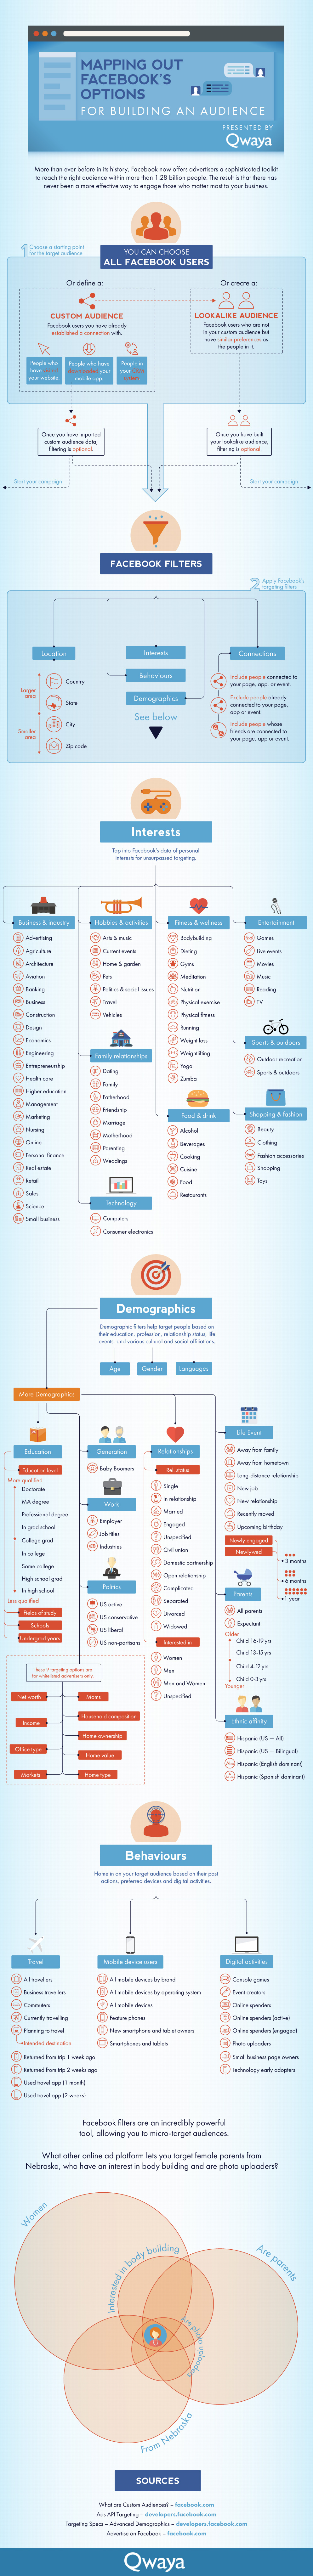 Infographic: Target Your Facebook Ads to Maximize Your Ad's Effectiveness